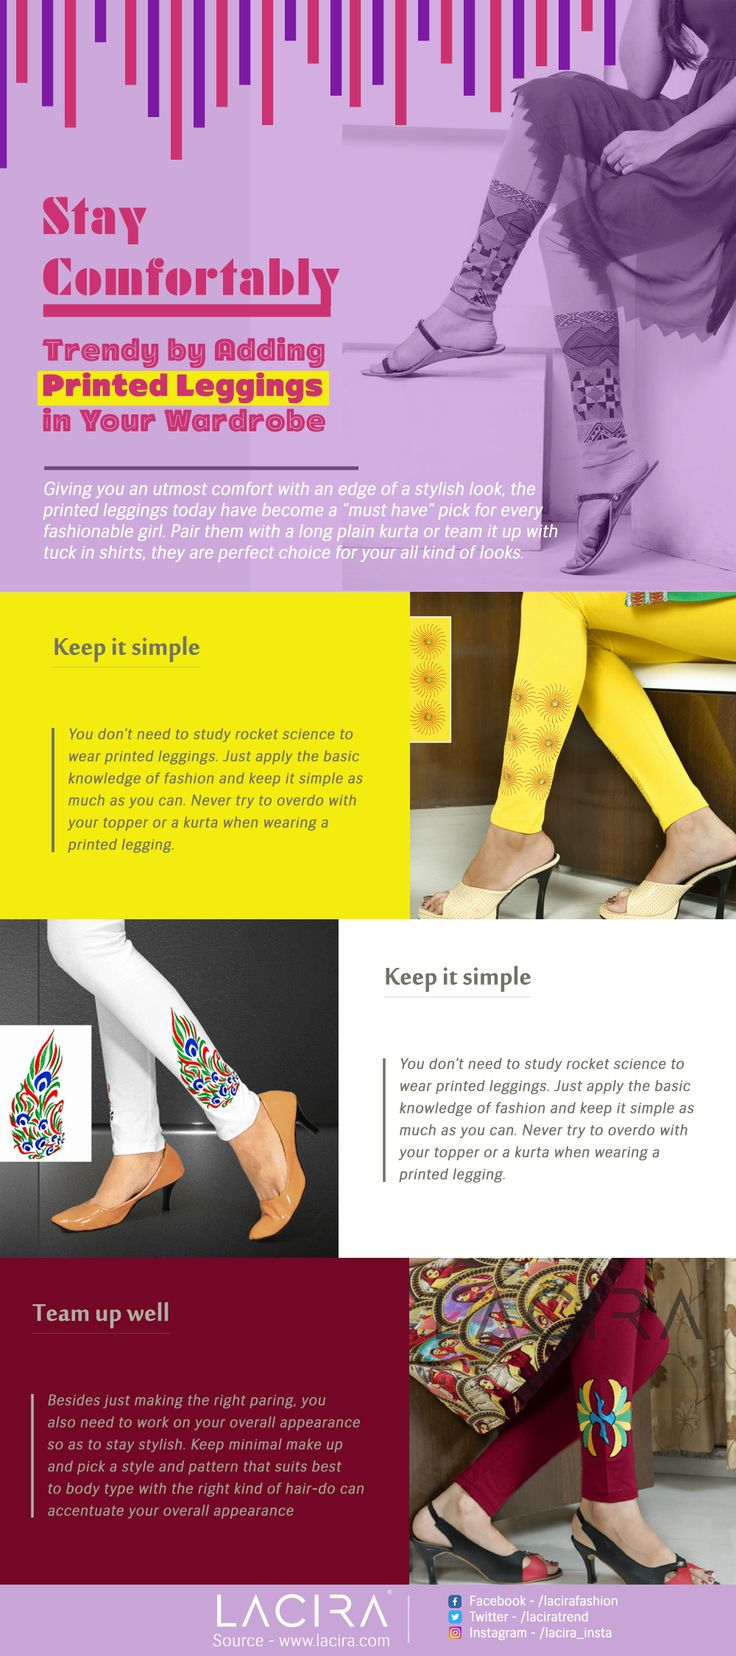 """Stay Comfortably Trendy by Adding Printed Leggings in Your Wardrobe Giving you an utmost comfort with an edge of a stylish look, the printed leggings today have become a """"must have"""" pick for every fashionable girl. Pair them with a long plain kurta or team it up with tuck in shirts, they are perfect choice for your all kind of looks."""